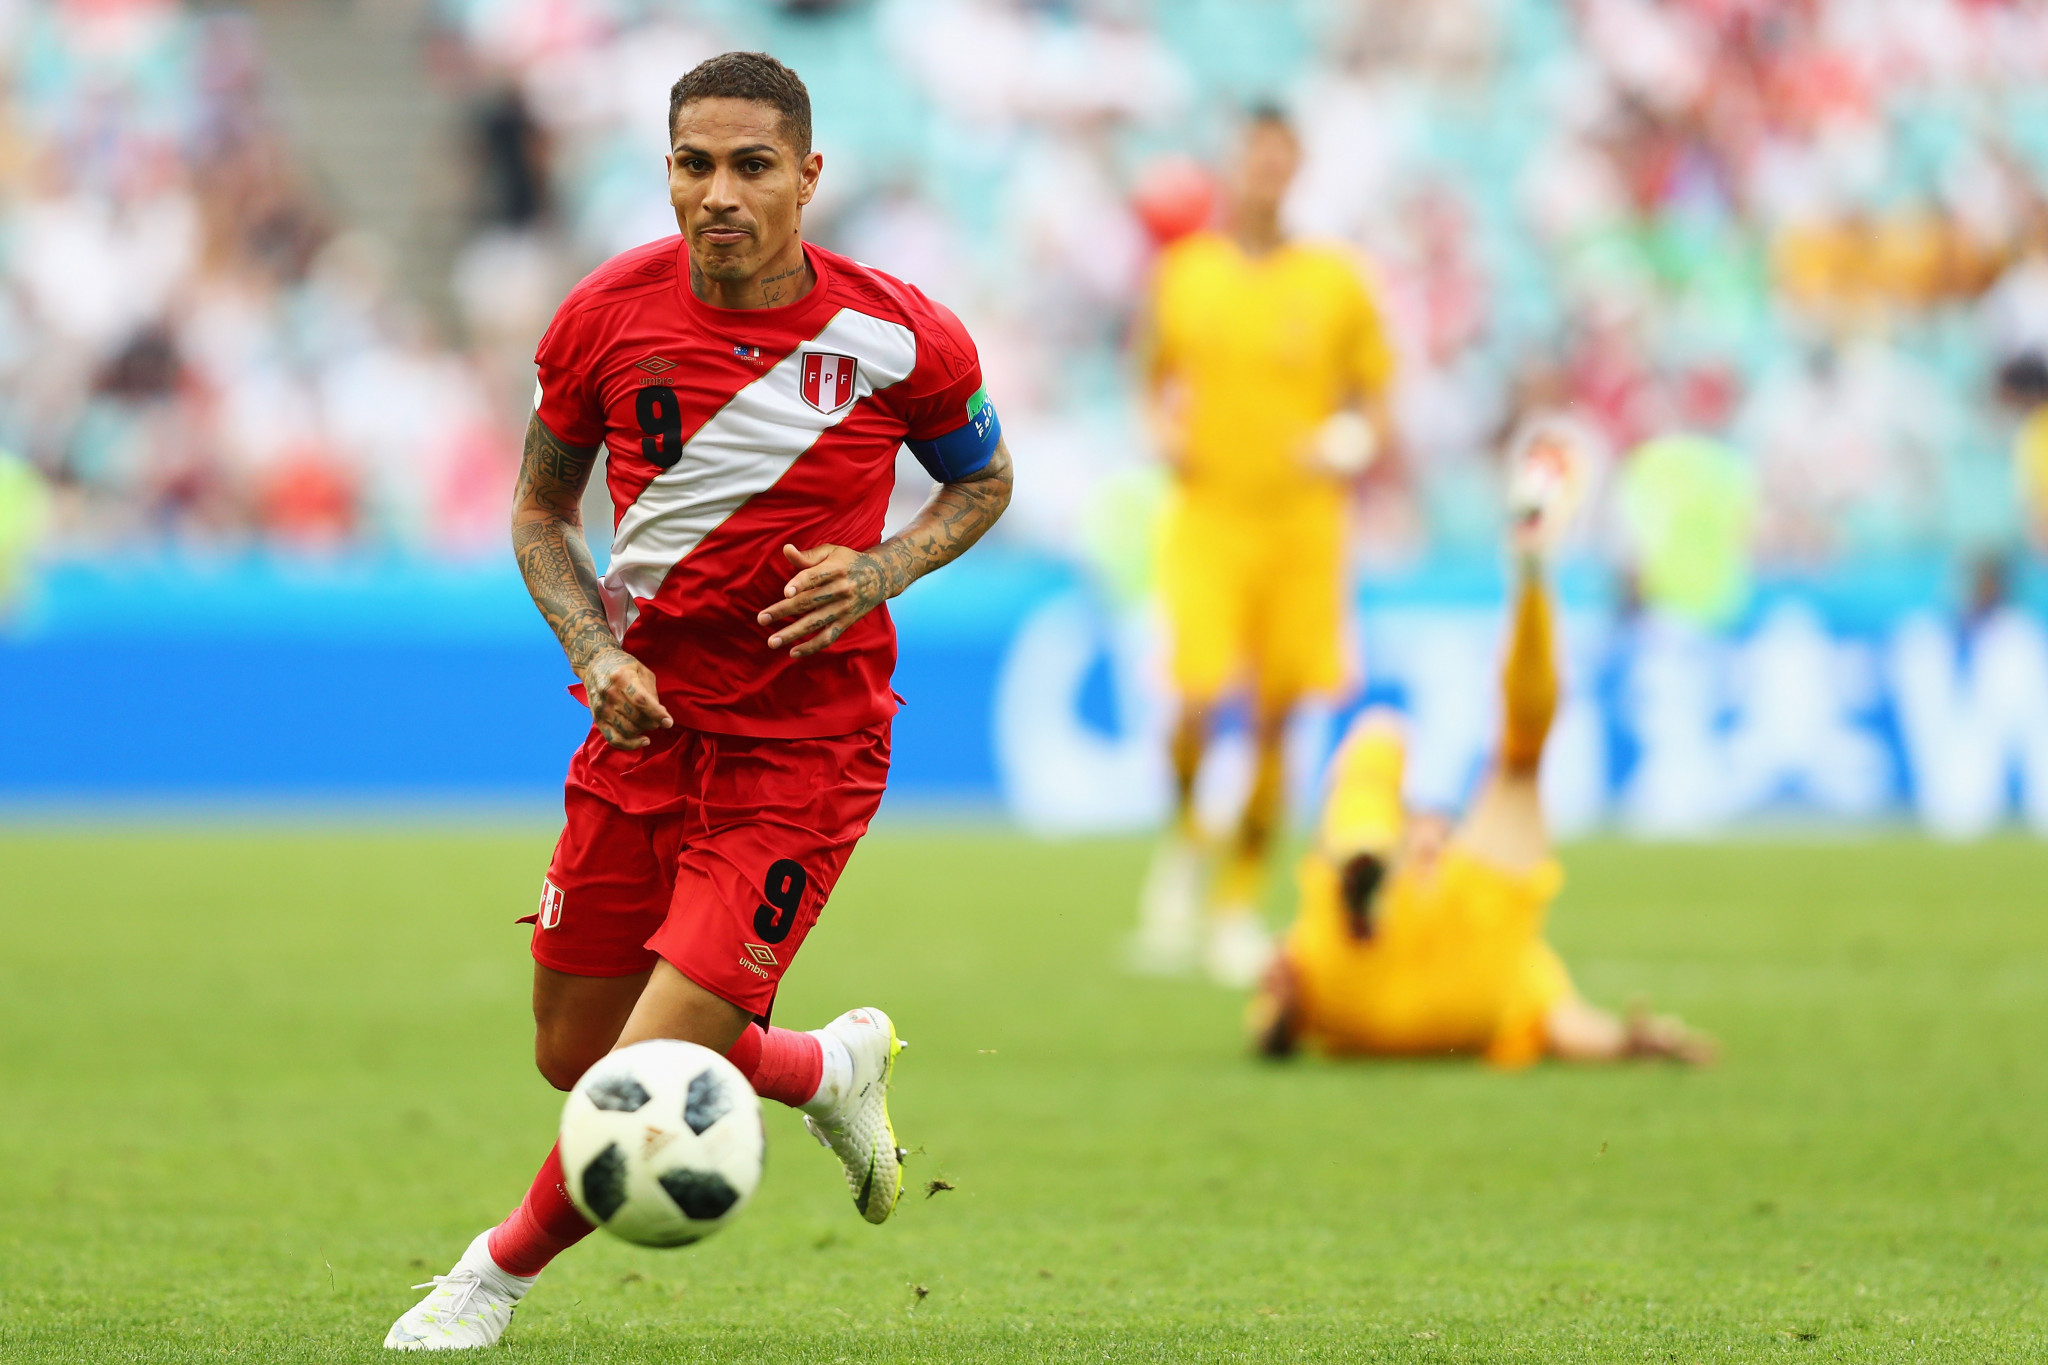 Peru captain Paolo Guerrero was nearly banned from the tournament following a failed drugs test, but no failures have been announced during the World Cup ©Getty Images